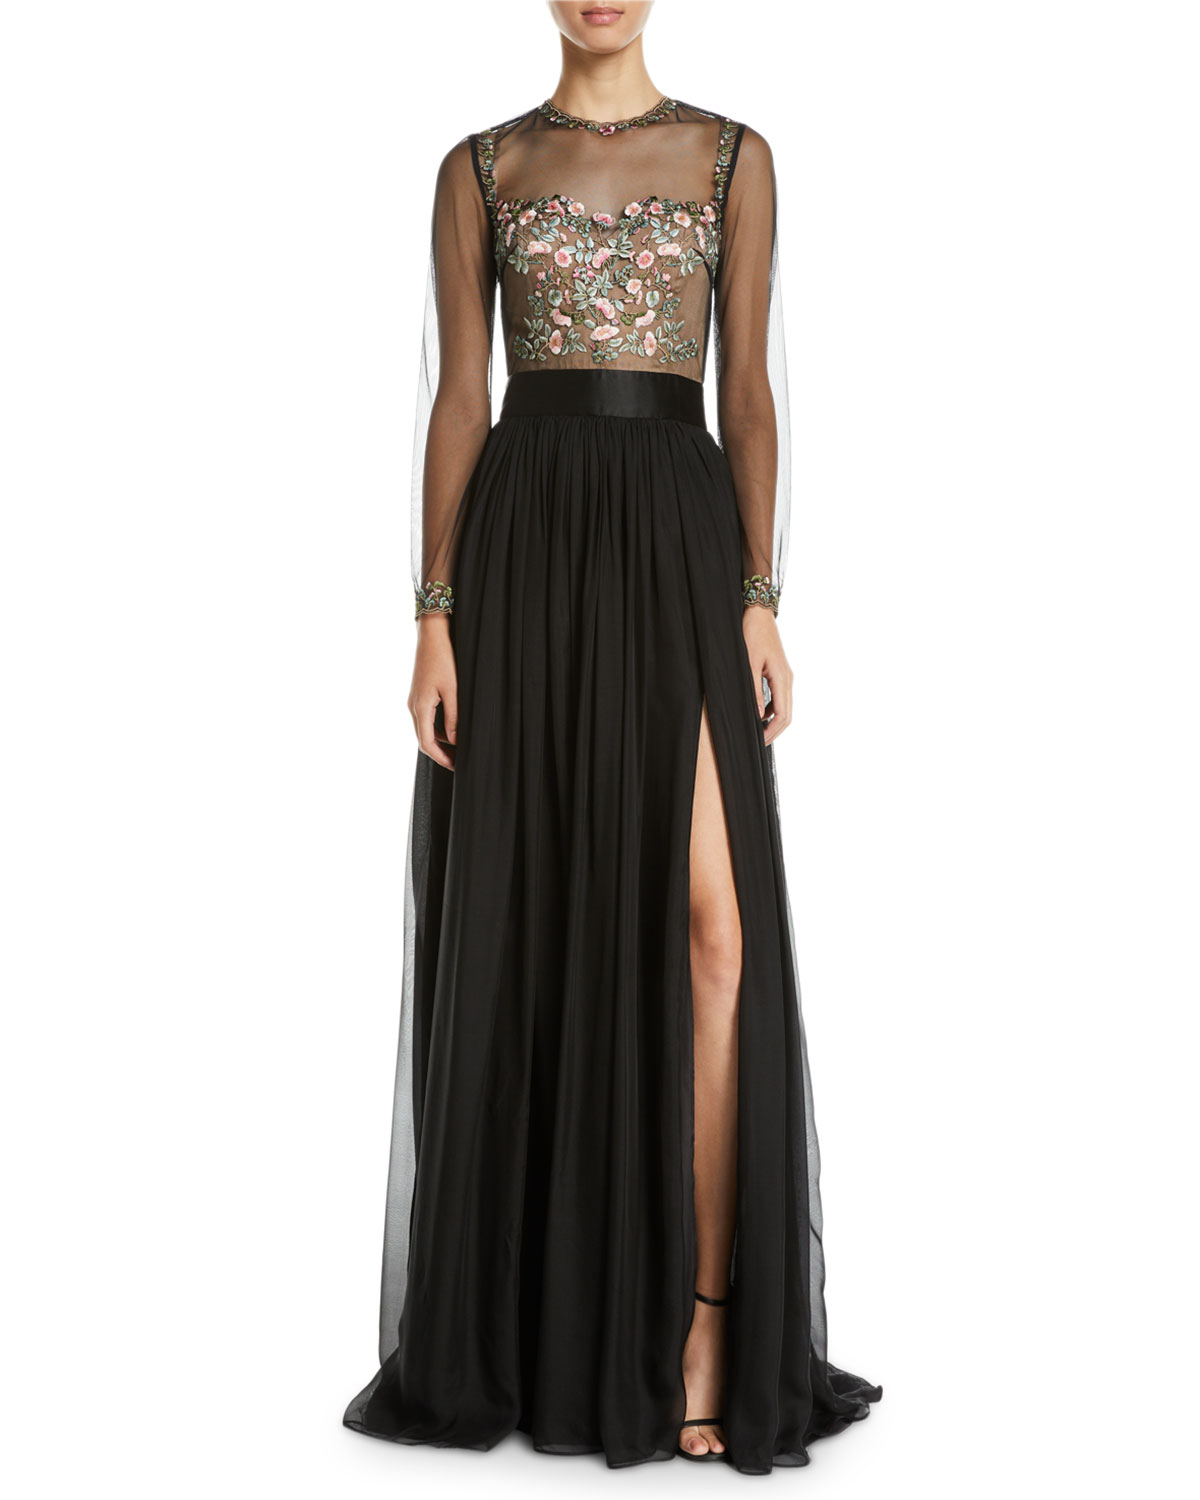 Leslie Embellished & Sheer Long-Sleeve Gown